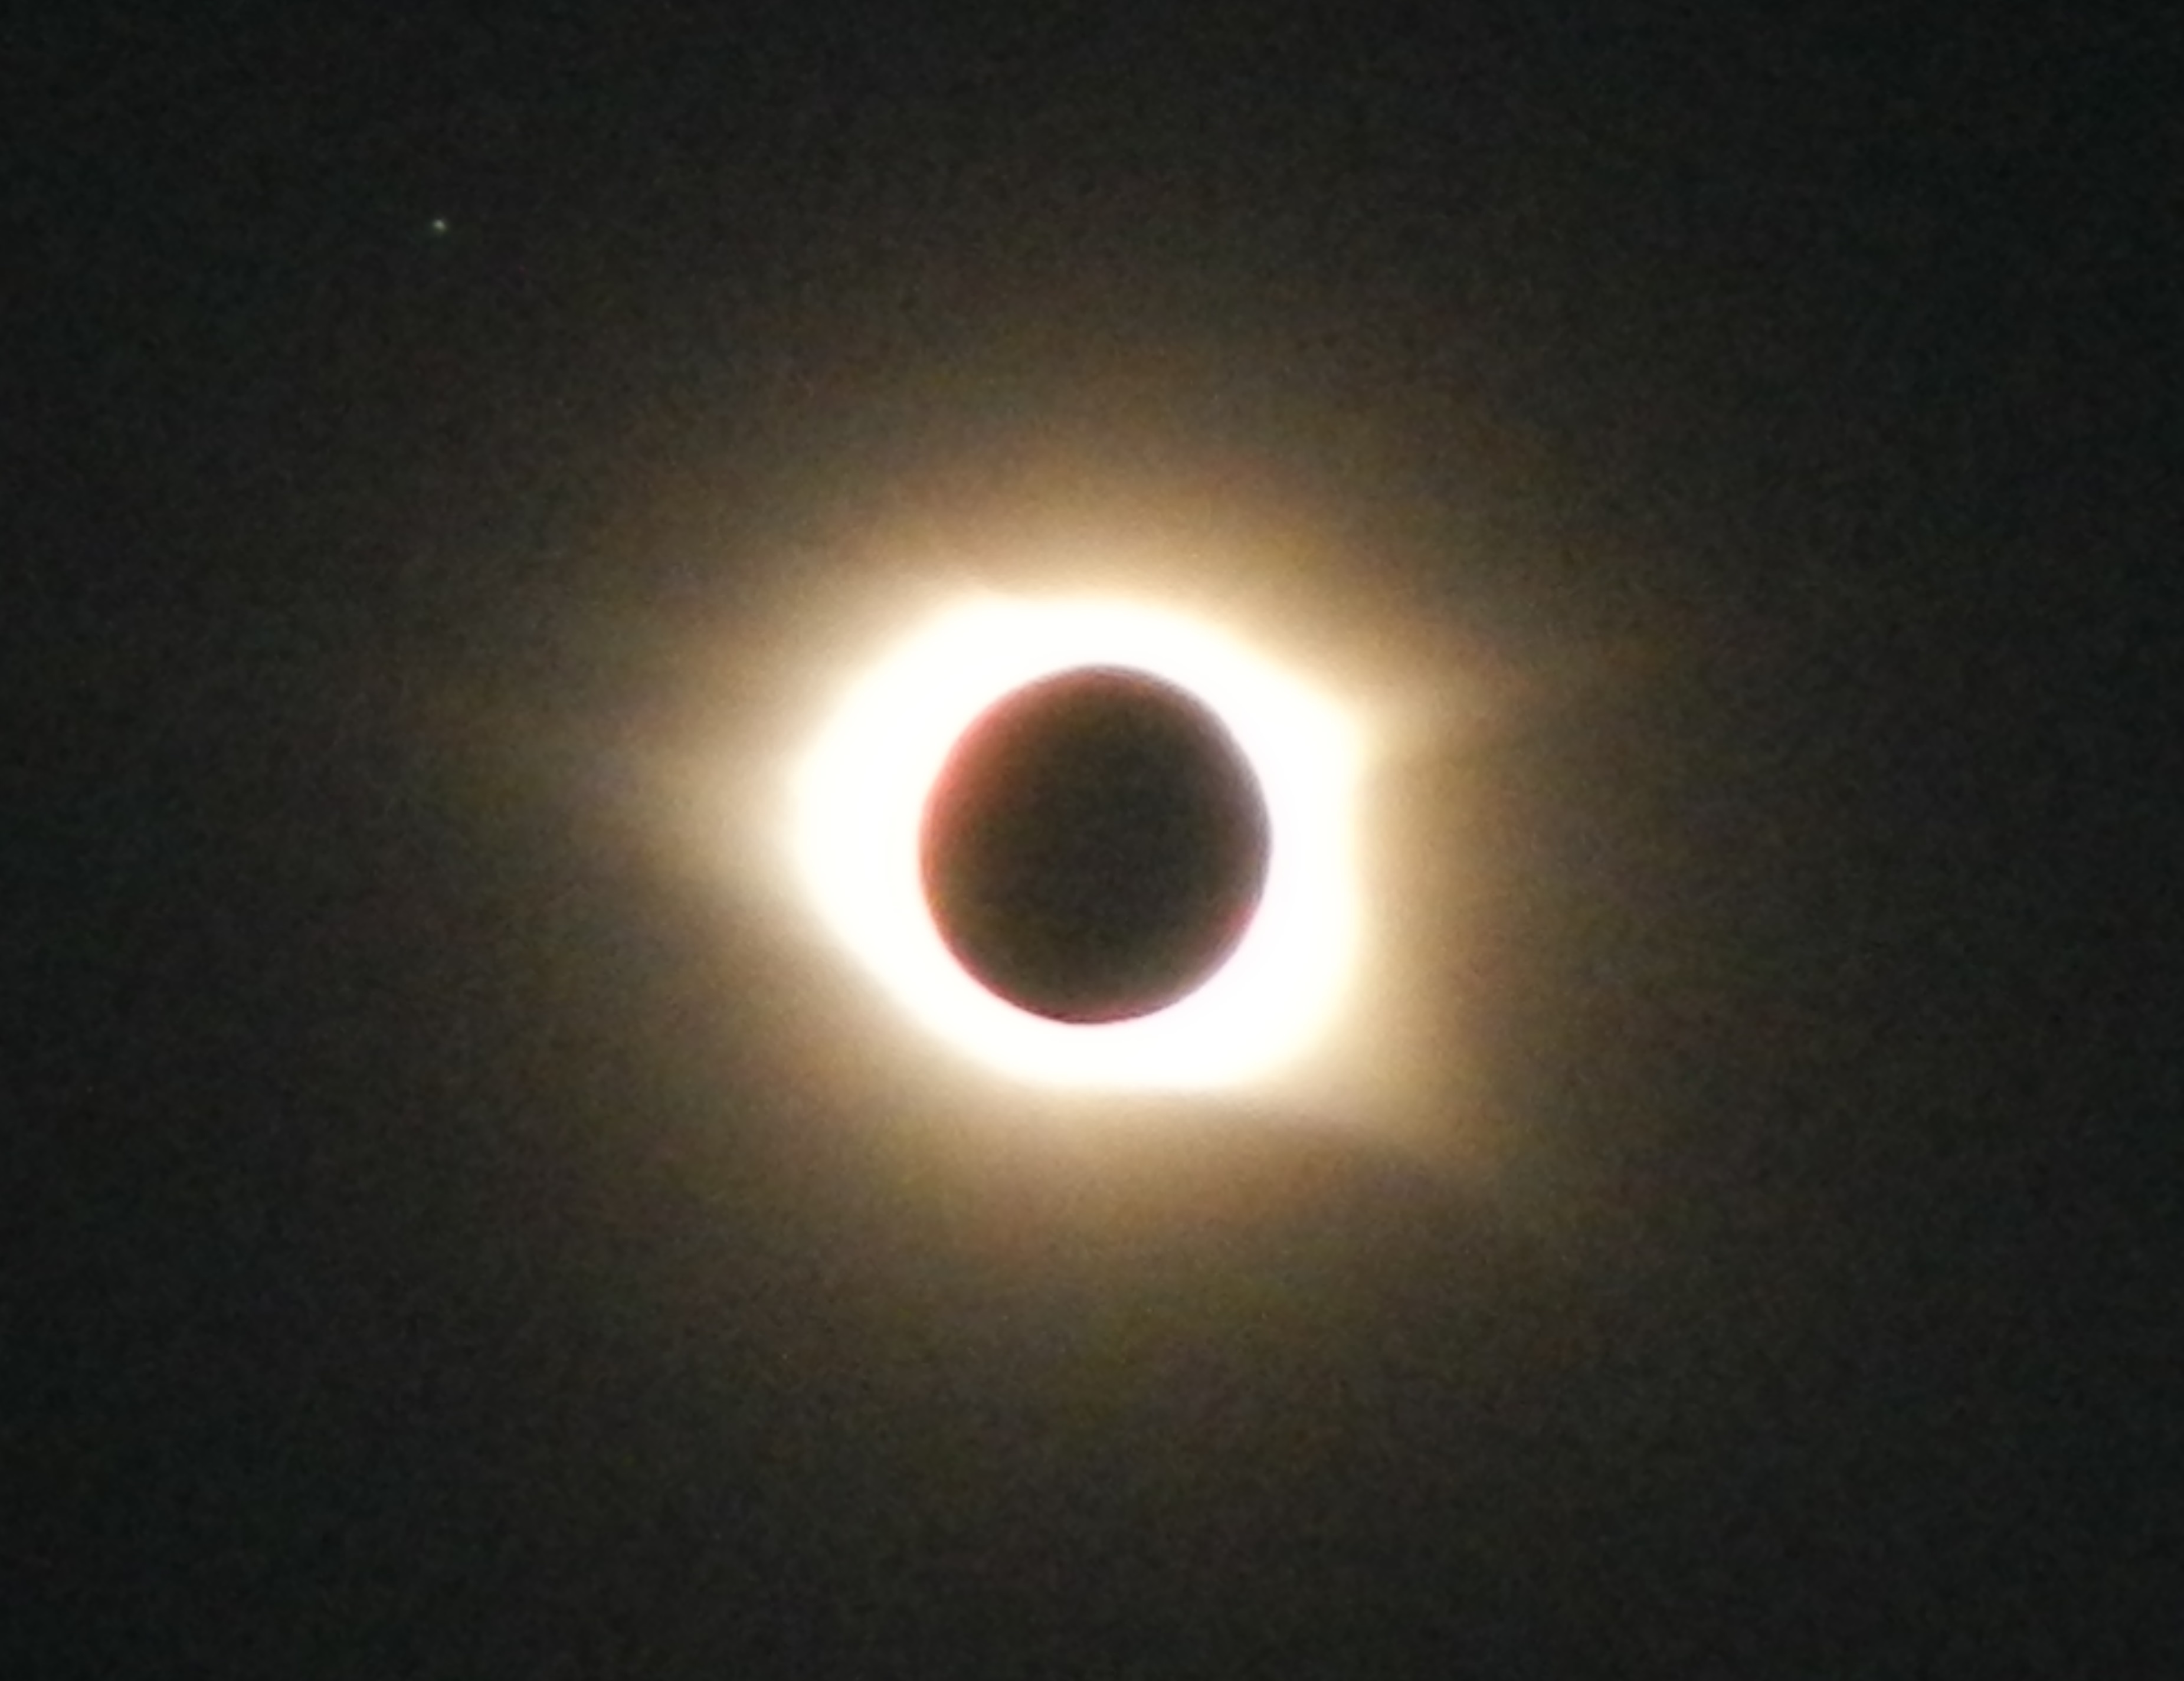 Total Solar Eclipse Photographed from Ken Wright's Digital Camera